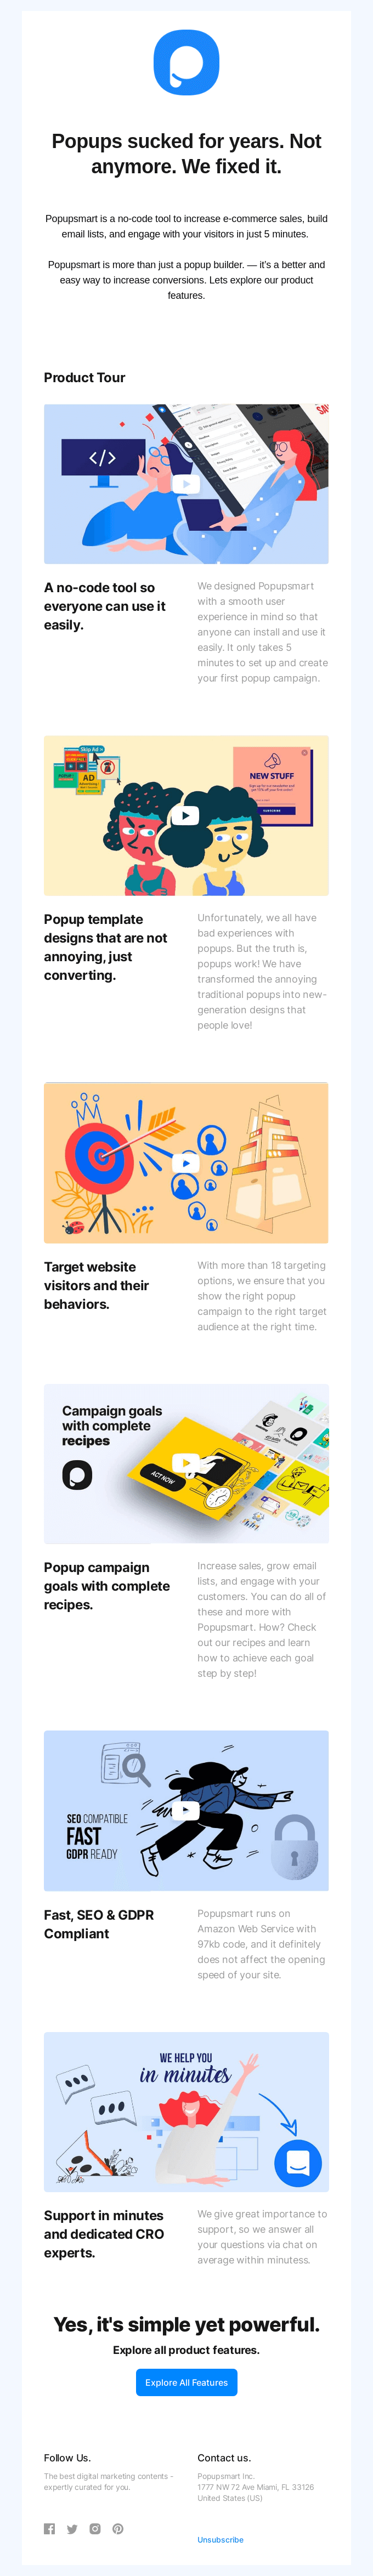 Popups sucked for years. We fixed it. Explore our product features.